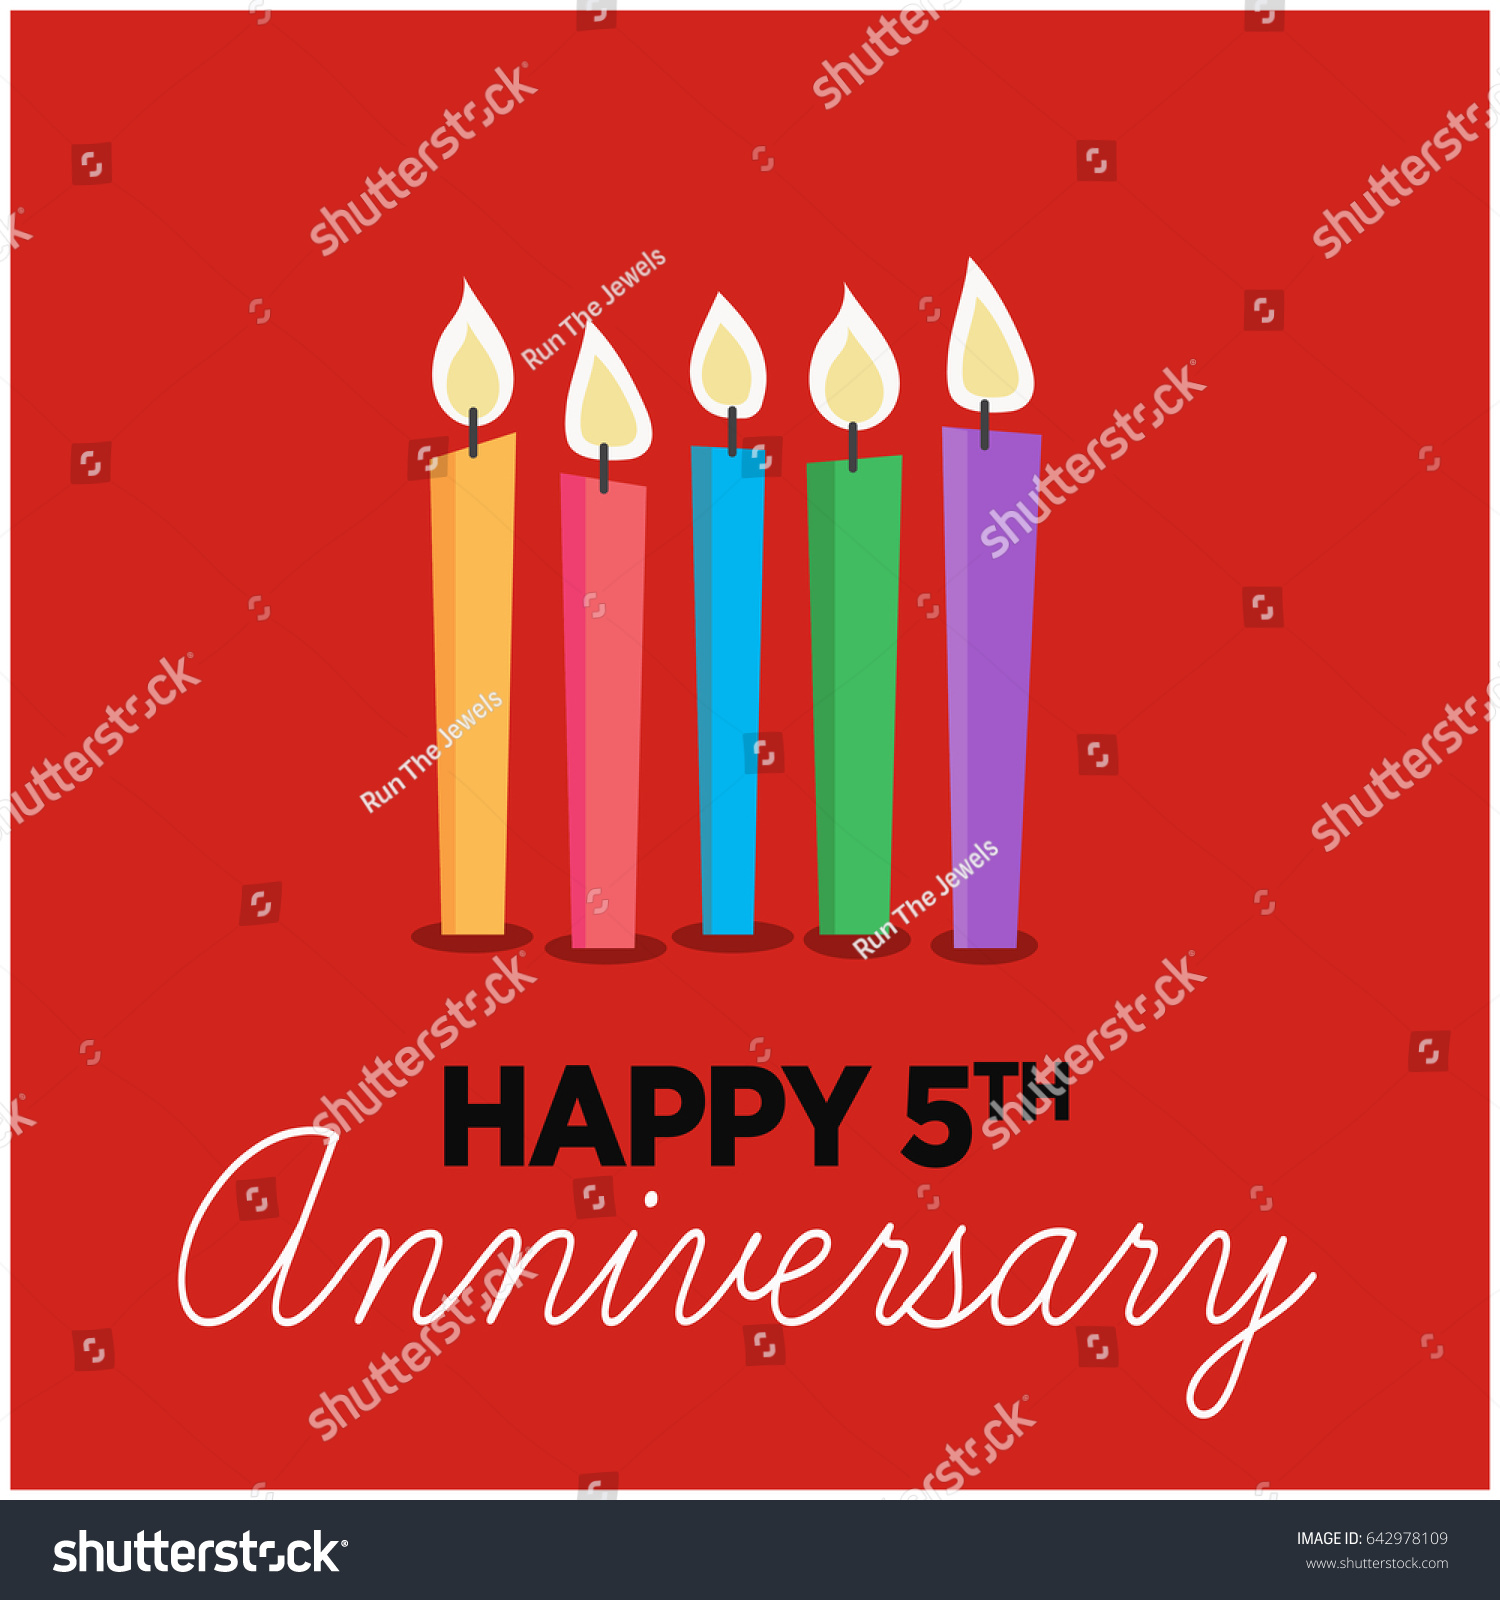 Happy fifth anniversary five candles cute stock vector 642978109 happy fifth anniversary with five candles cute design kristyandbryce Choice Image